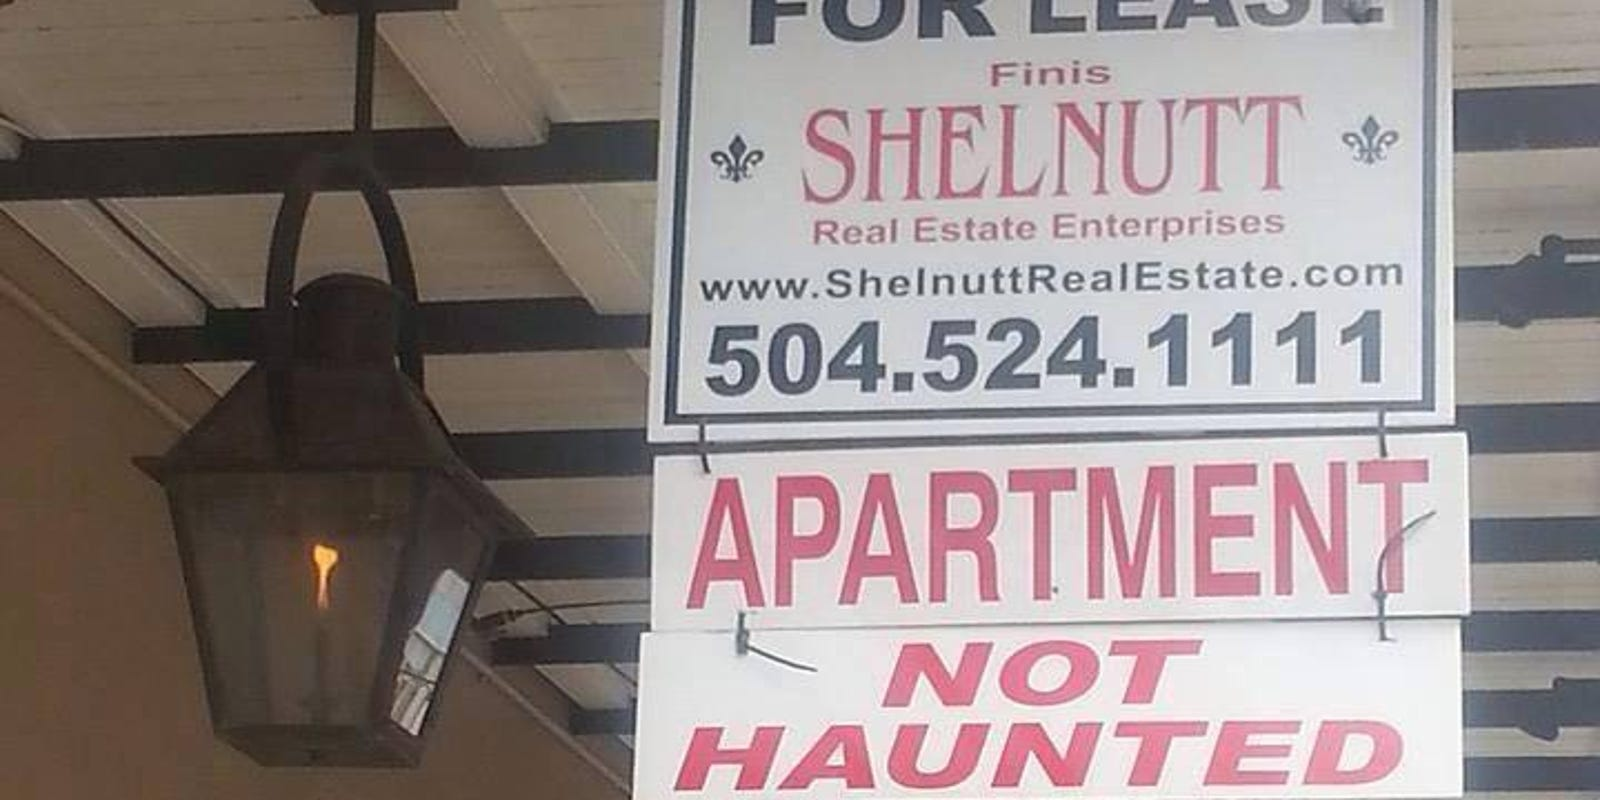 'Haunted' real estate signs in New Orleans grab attention